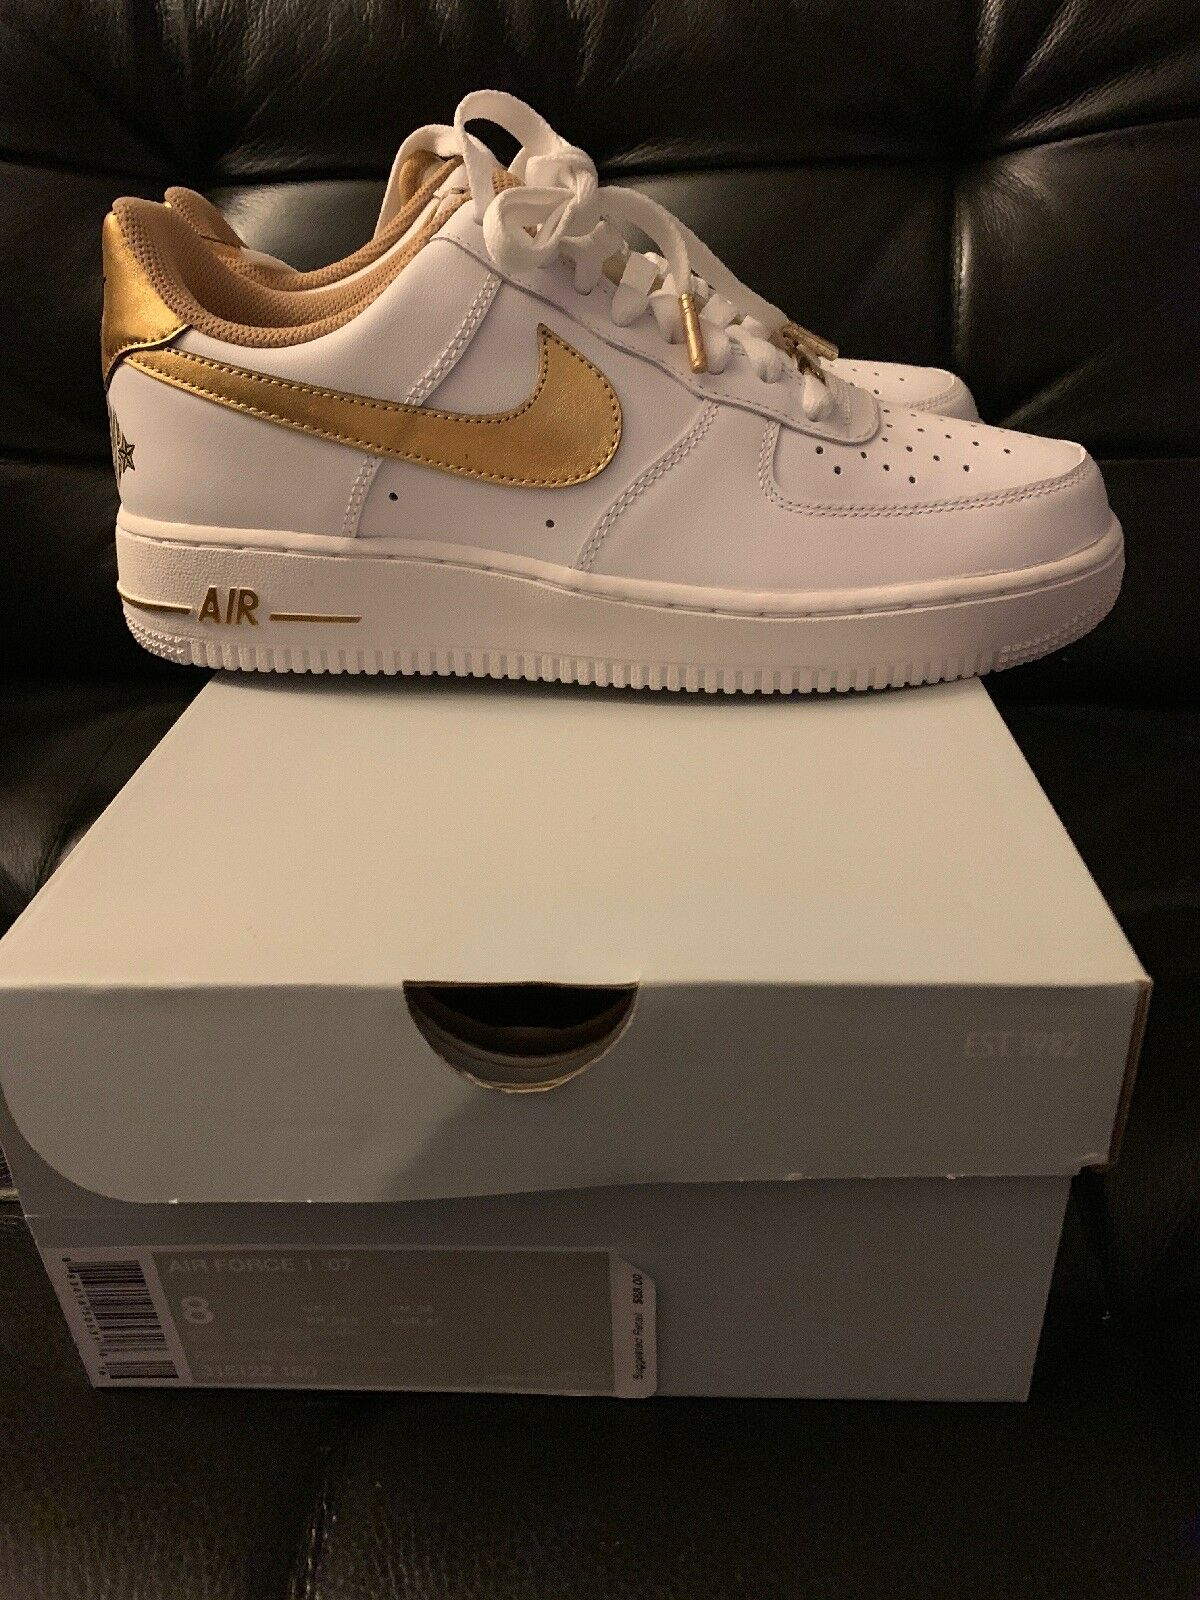 Nike Air Force 1 Low LA Los Angeles Lakers All Star Men's Sz 8 shoes 315122 180